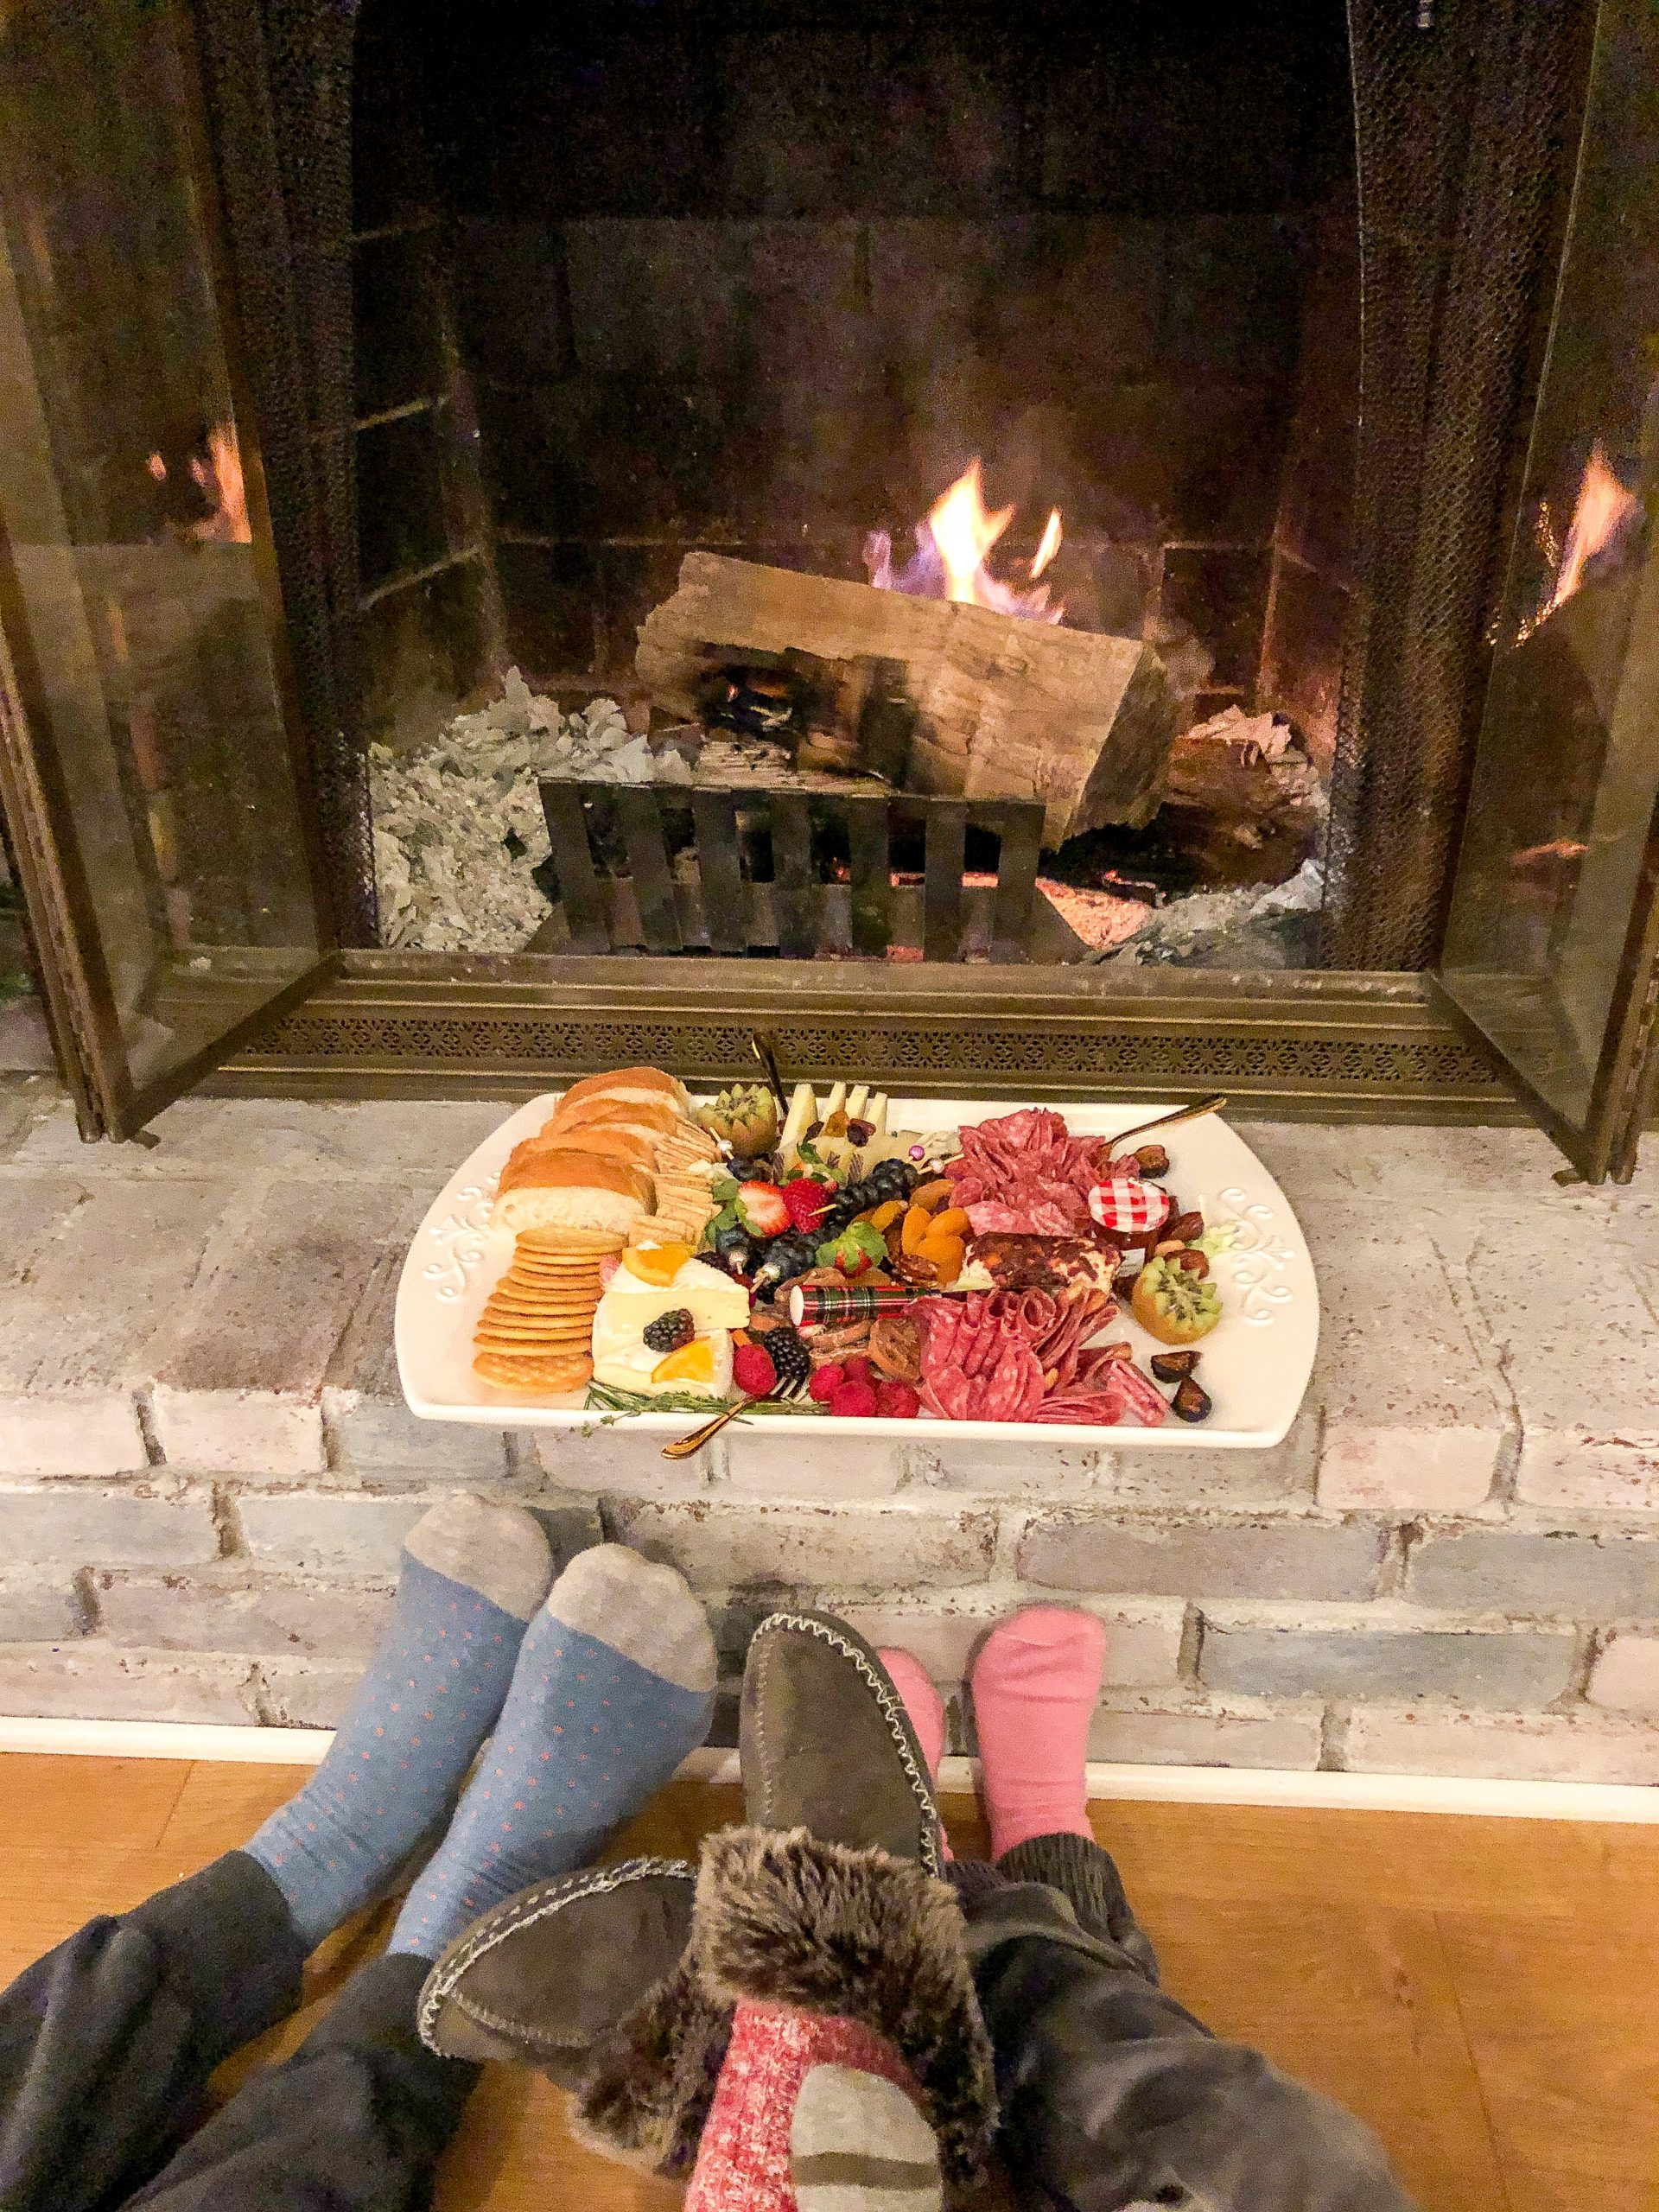 Meat and Cheese platter in front of fire with family's feet in front of it